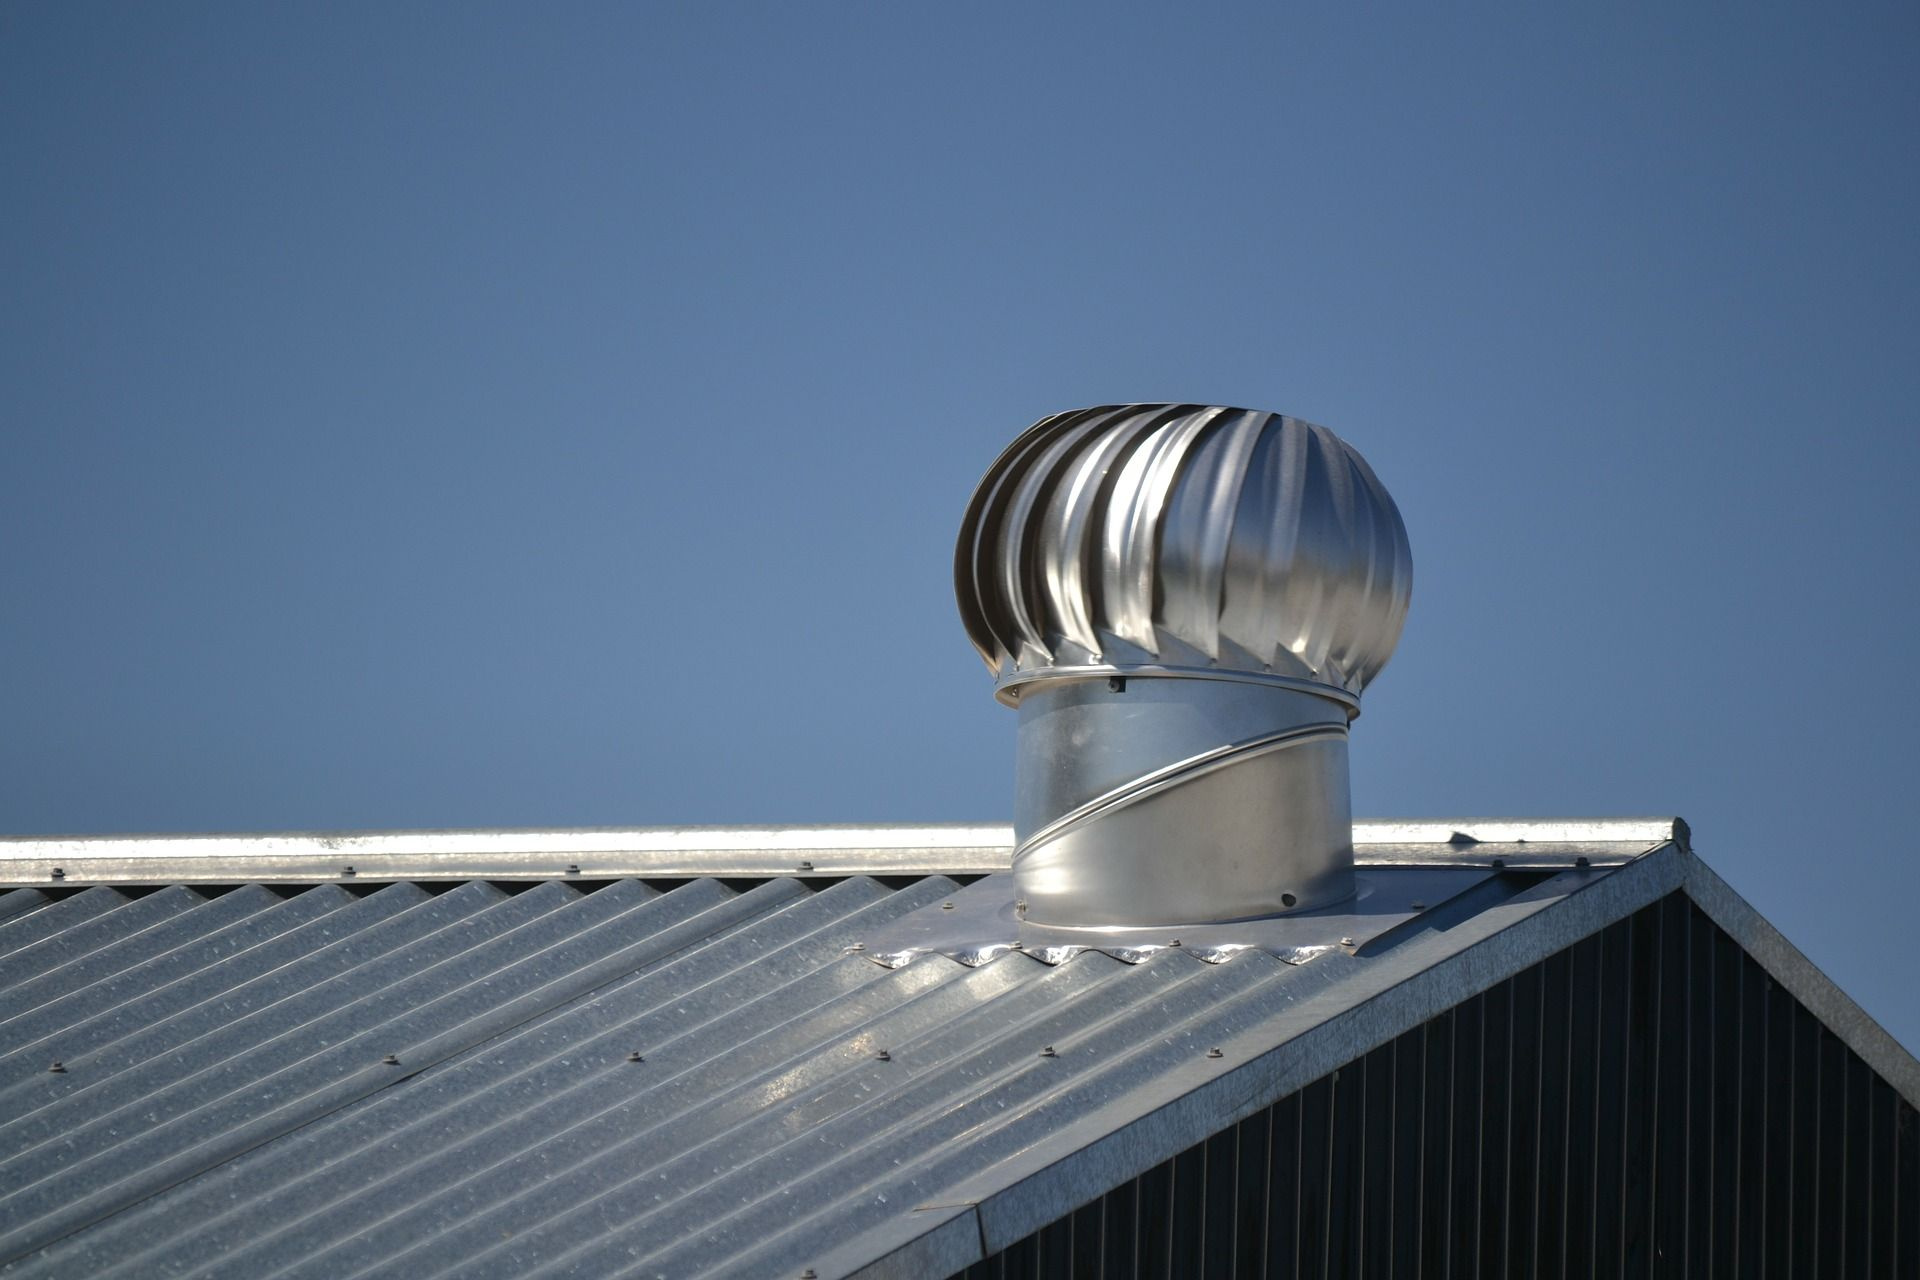 Image of a shiny turbine roof vent on a shiny metal roof.